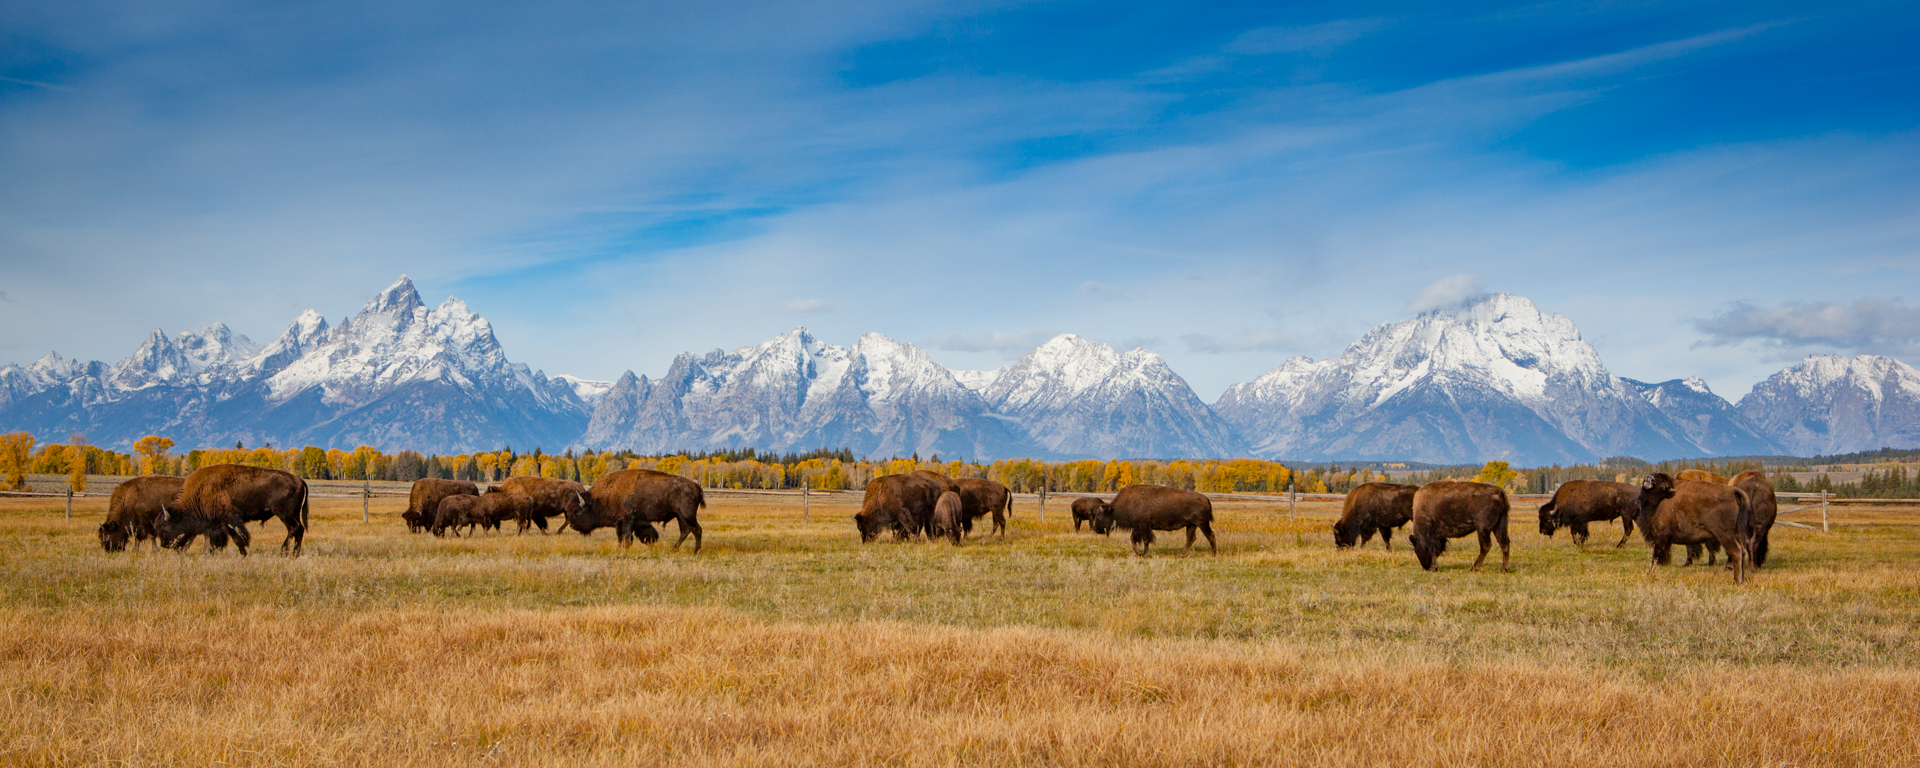 Tetons, Wyoming - A small herd of bison lazily graze against a backdrop of the Teton Range in early autumn. 4377